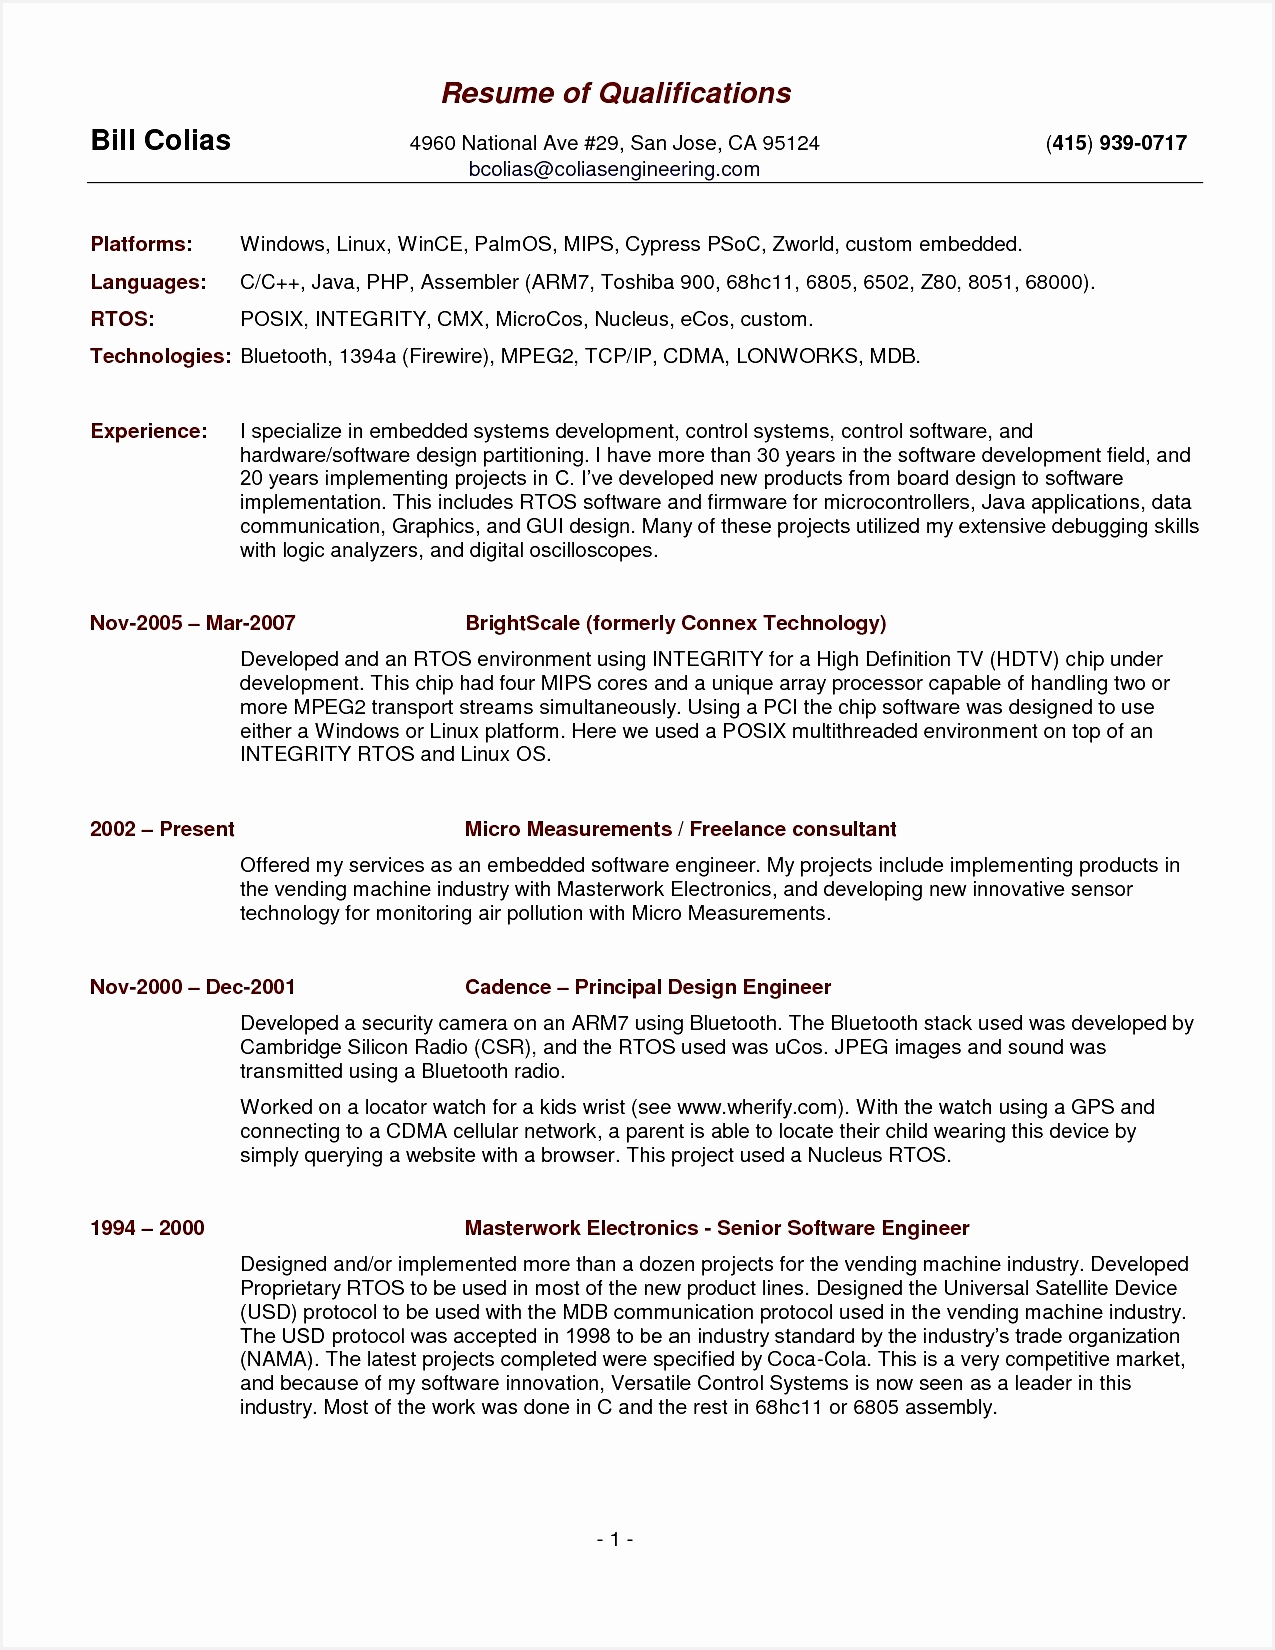 Download Curriculum Vitae Word Free | Curriculum Vitae Download Word ...